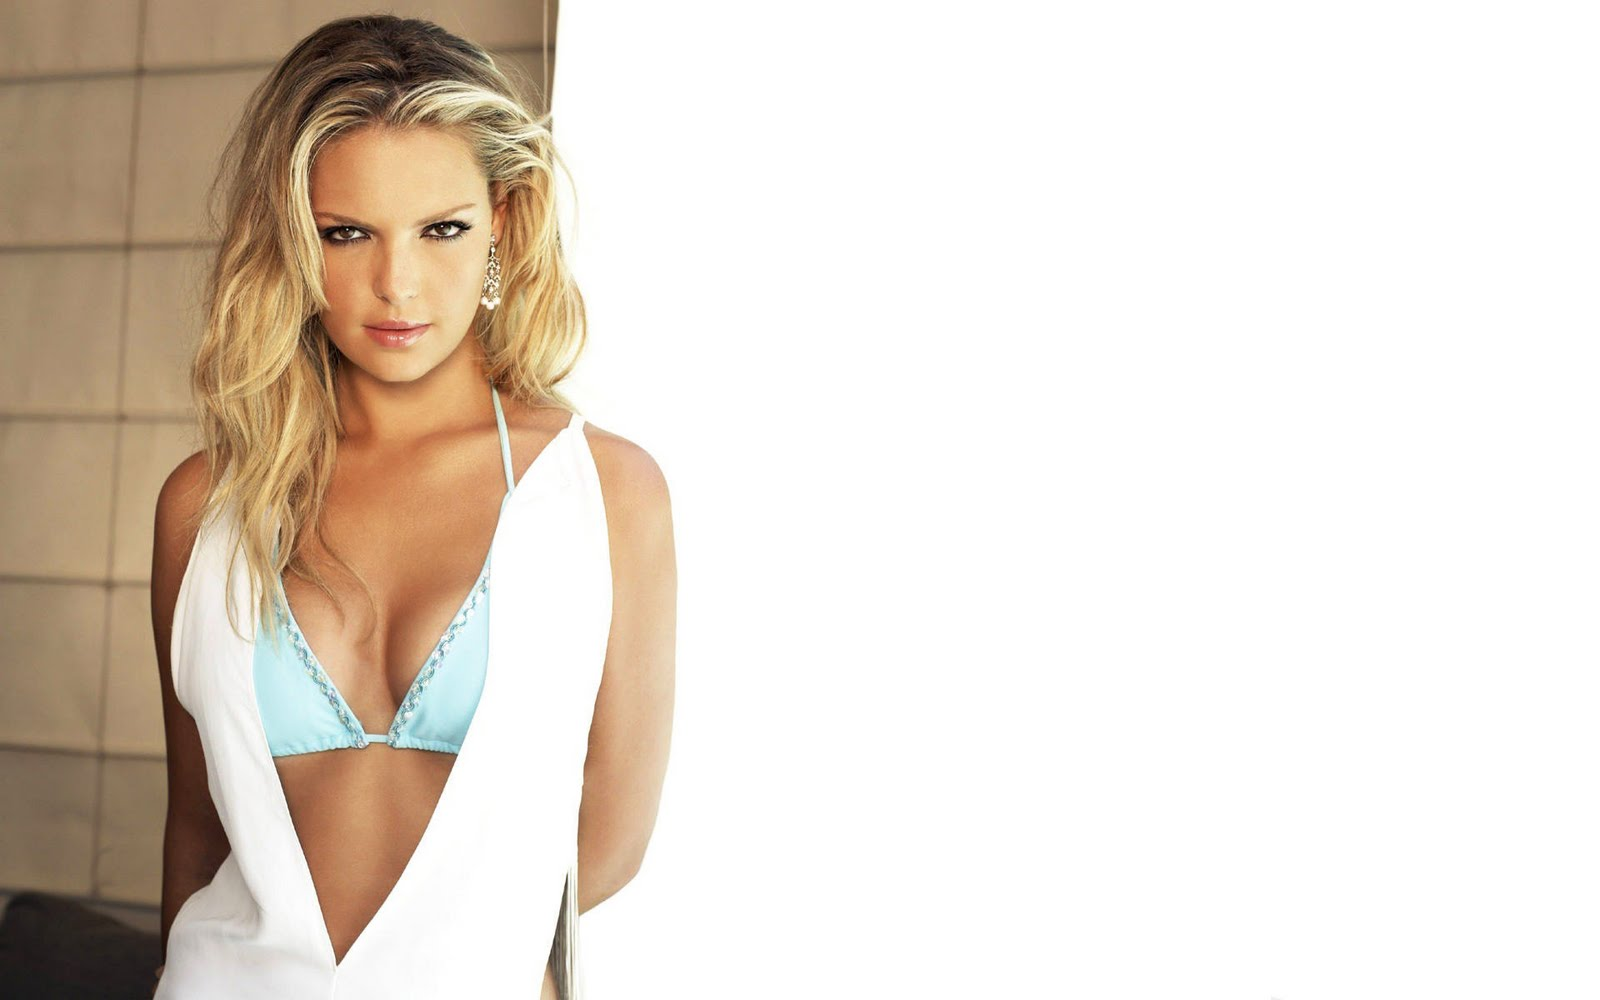 Katherine Heigl Ii Best Hot And Sexy Wallpaper